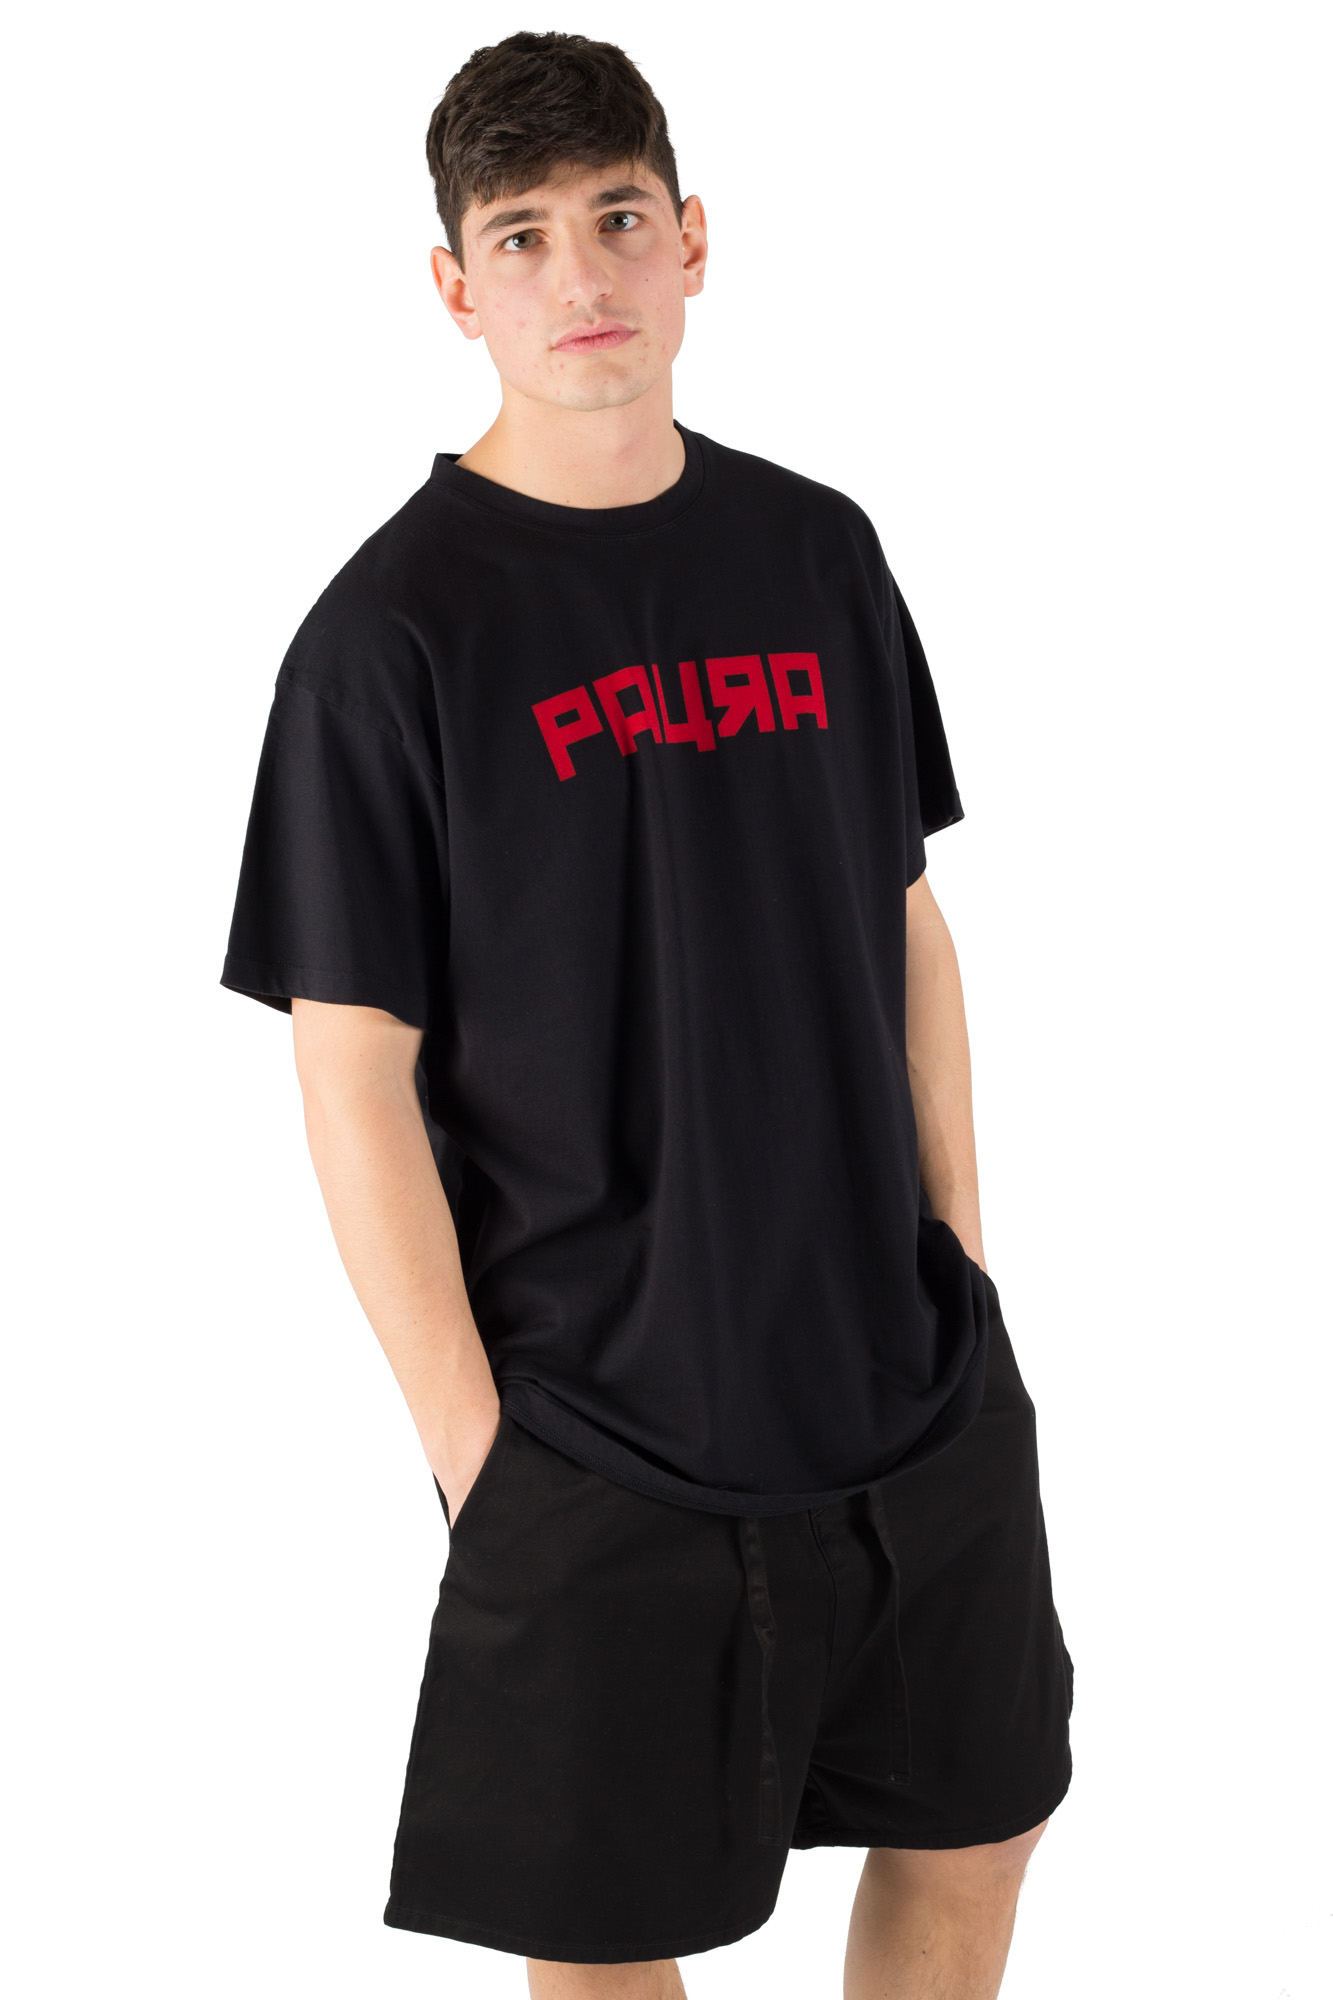 Paura - T-shirt oversize black college